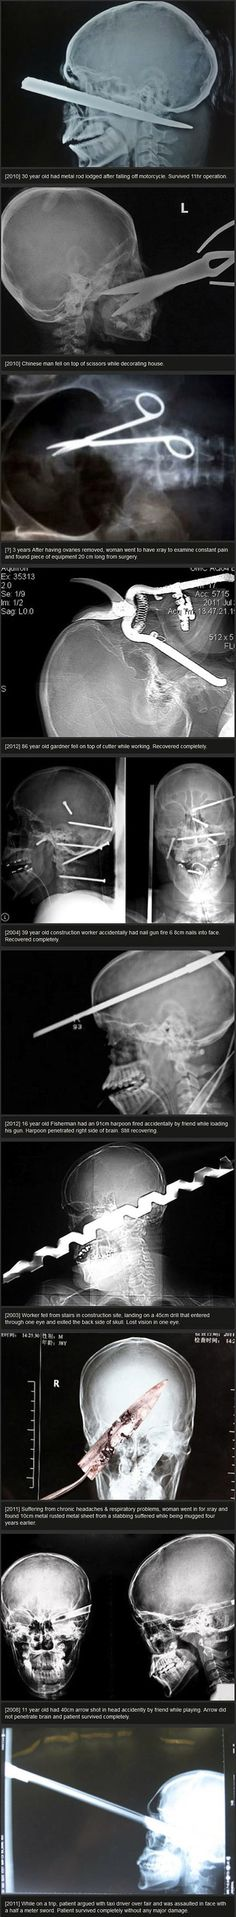 10 Unbelievable (Yet Real) X-Rays That Might Shock You -